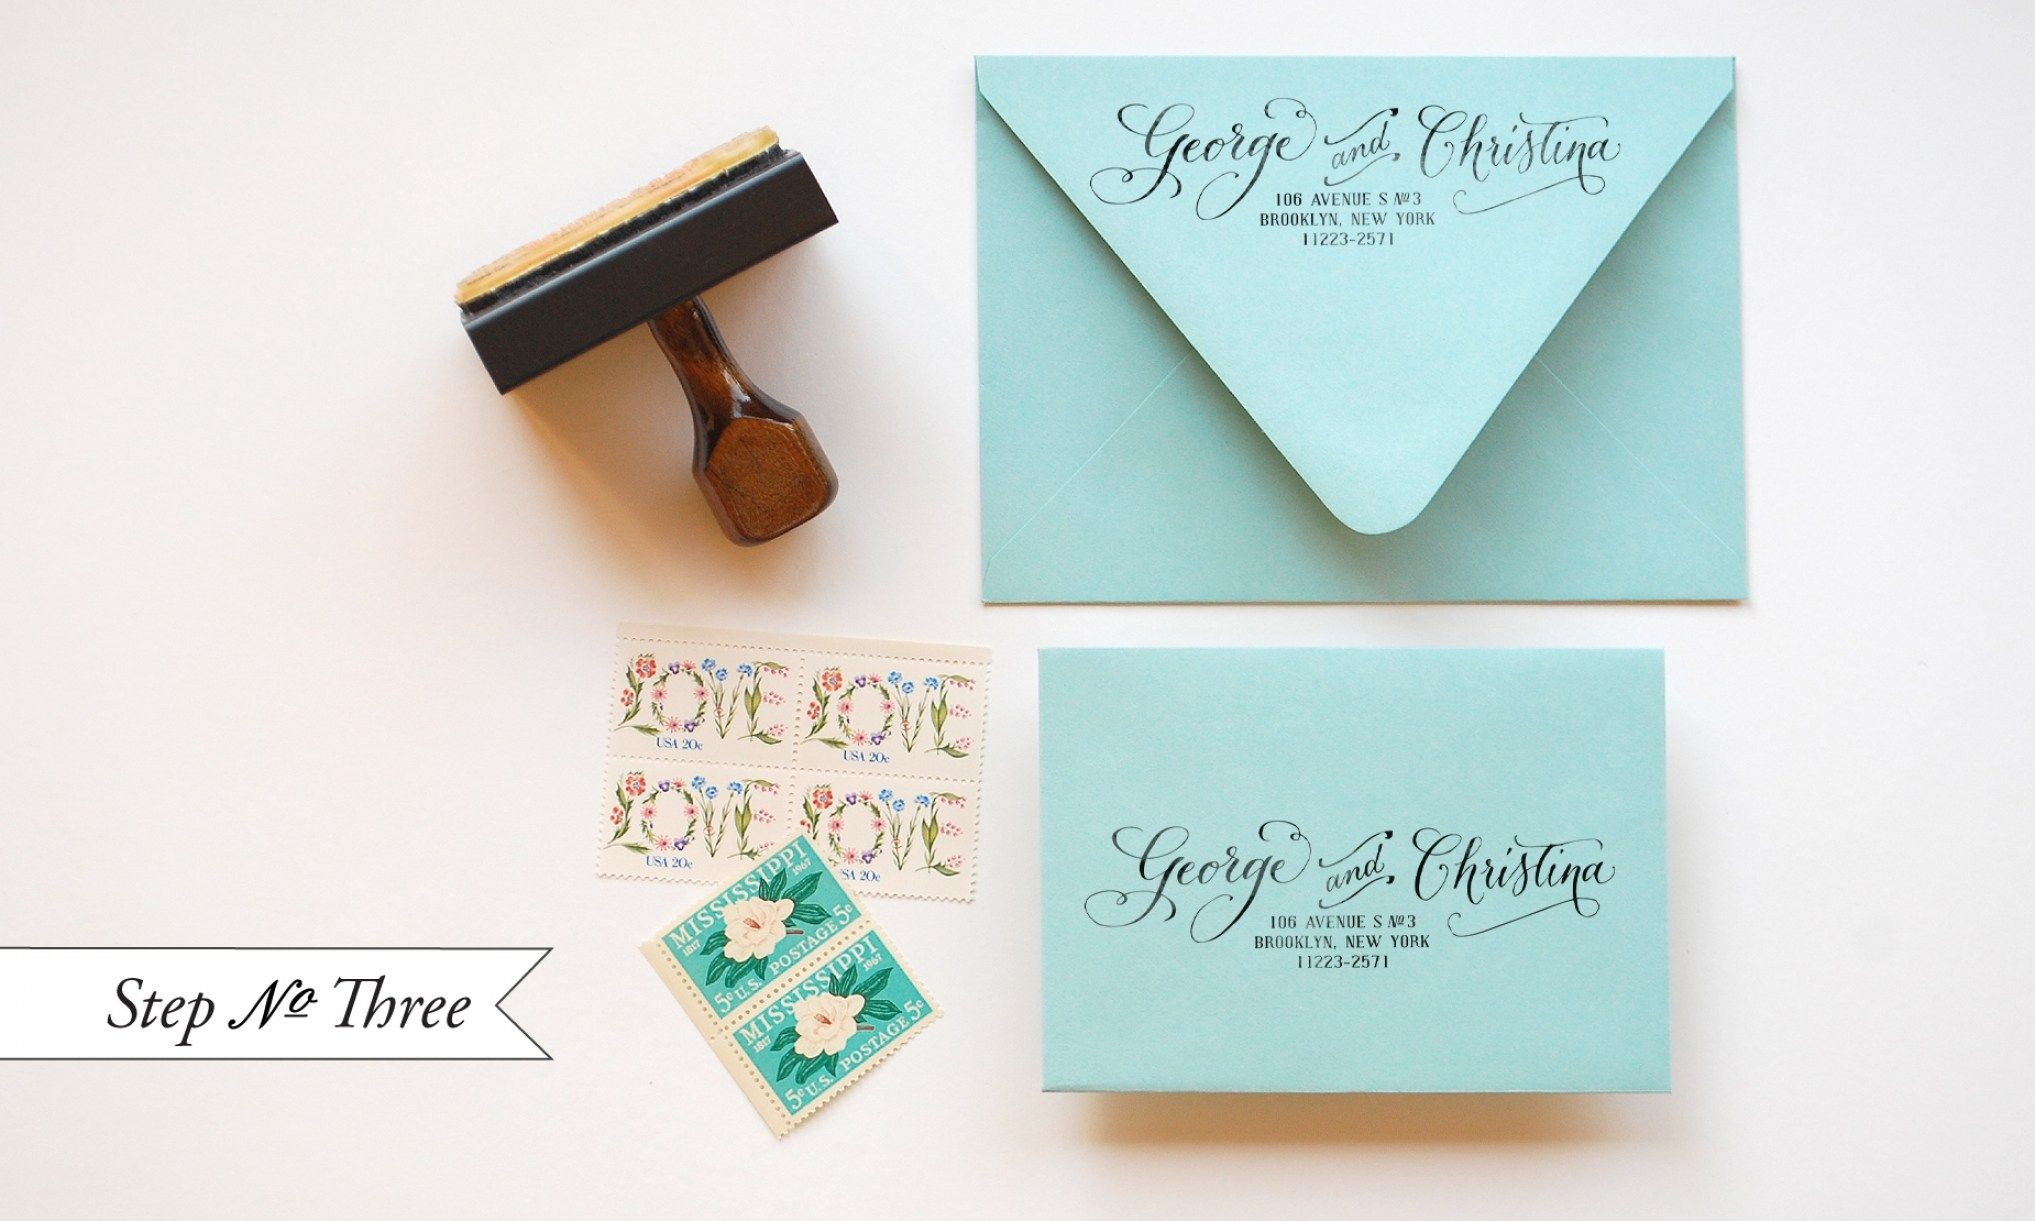 30 Address Etiquette Invitation Return Wedding